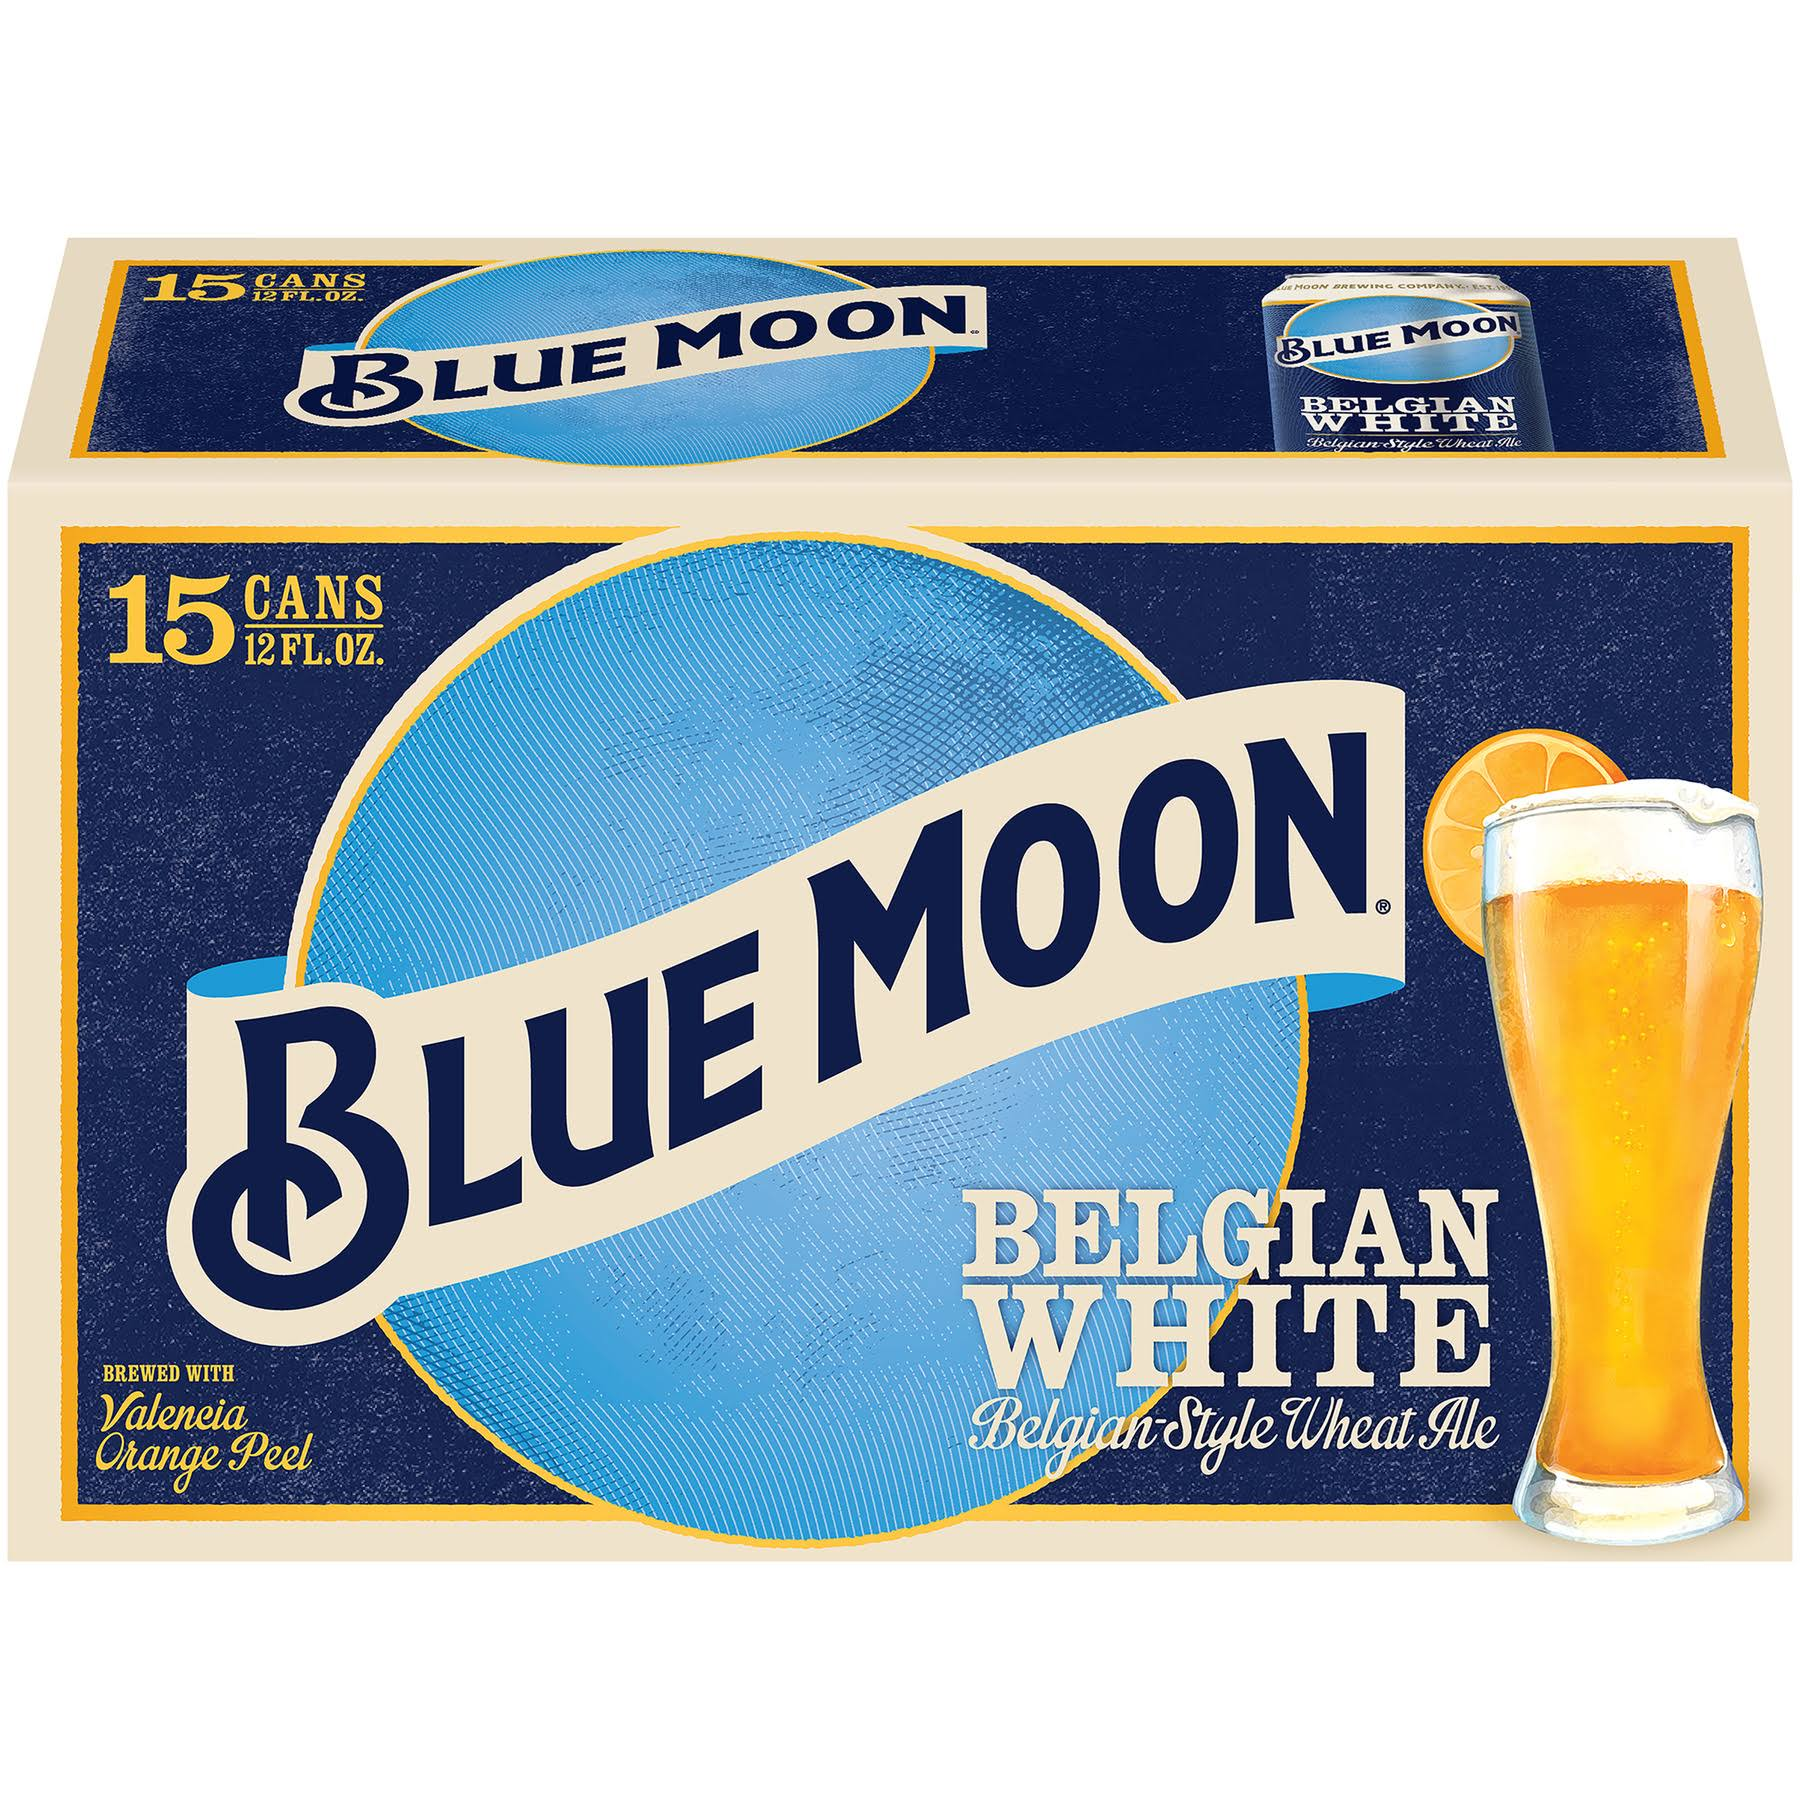 Blue Moon Beer, Wheat Ale, Belgian White, Belgian-Style - 15 – 12 fl oz cans